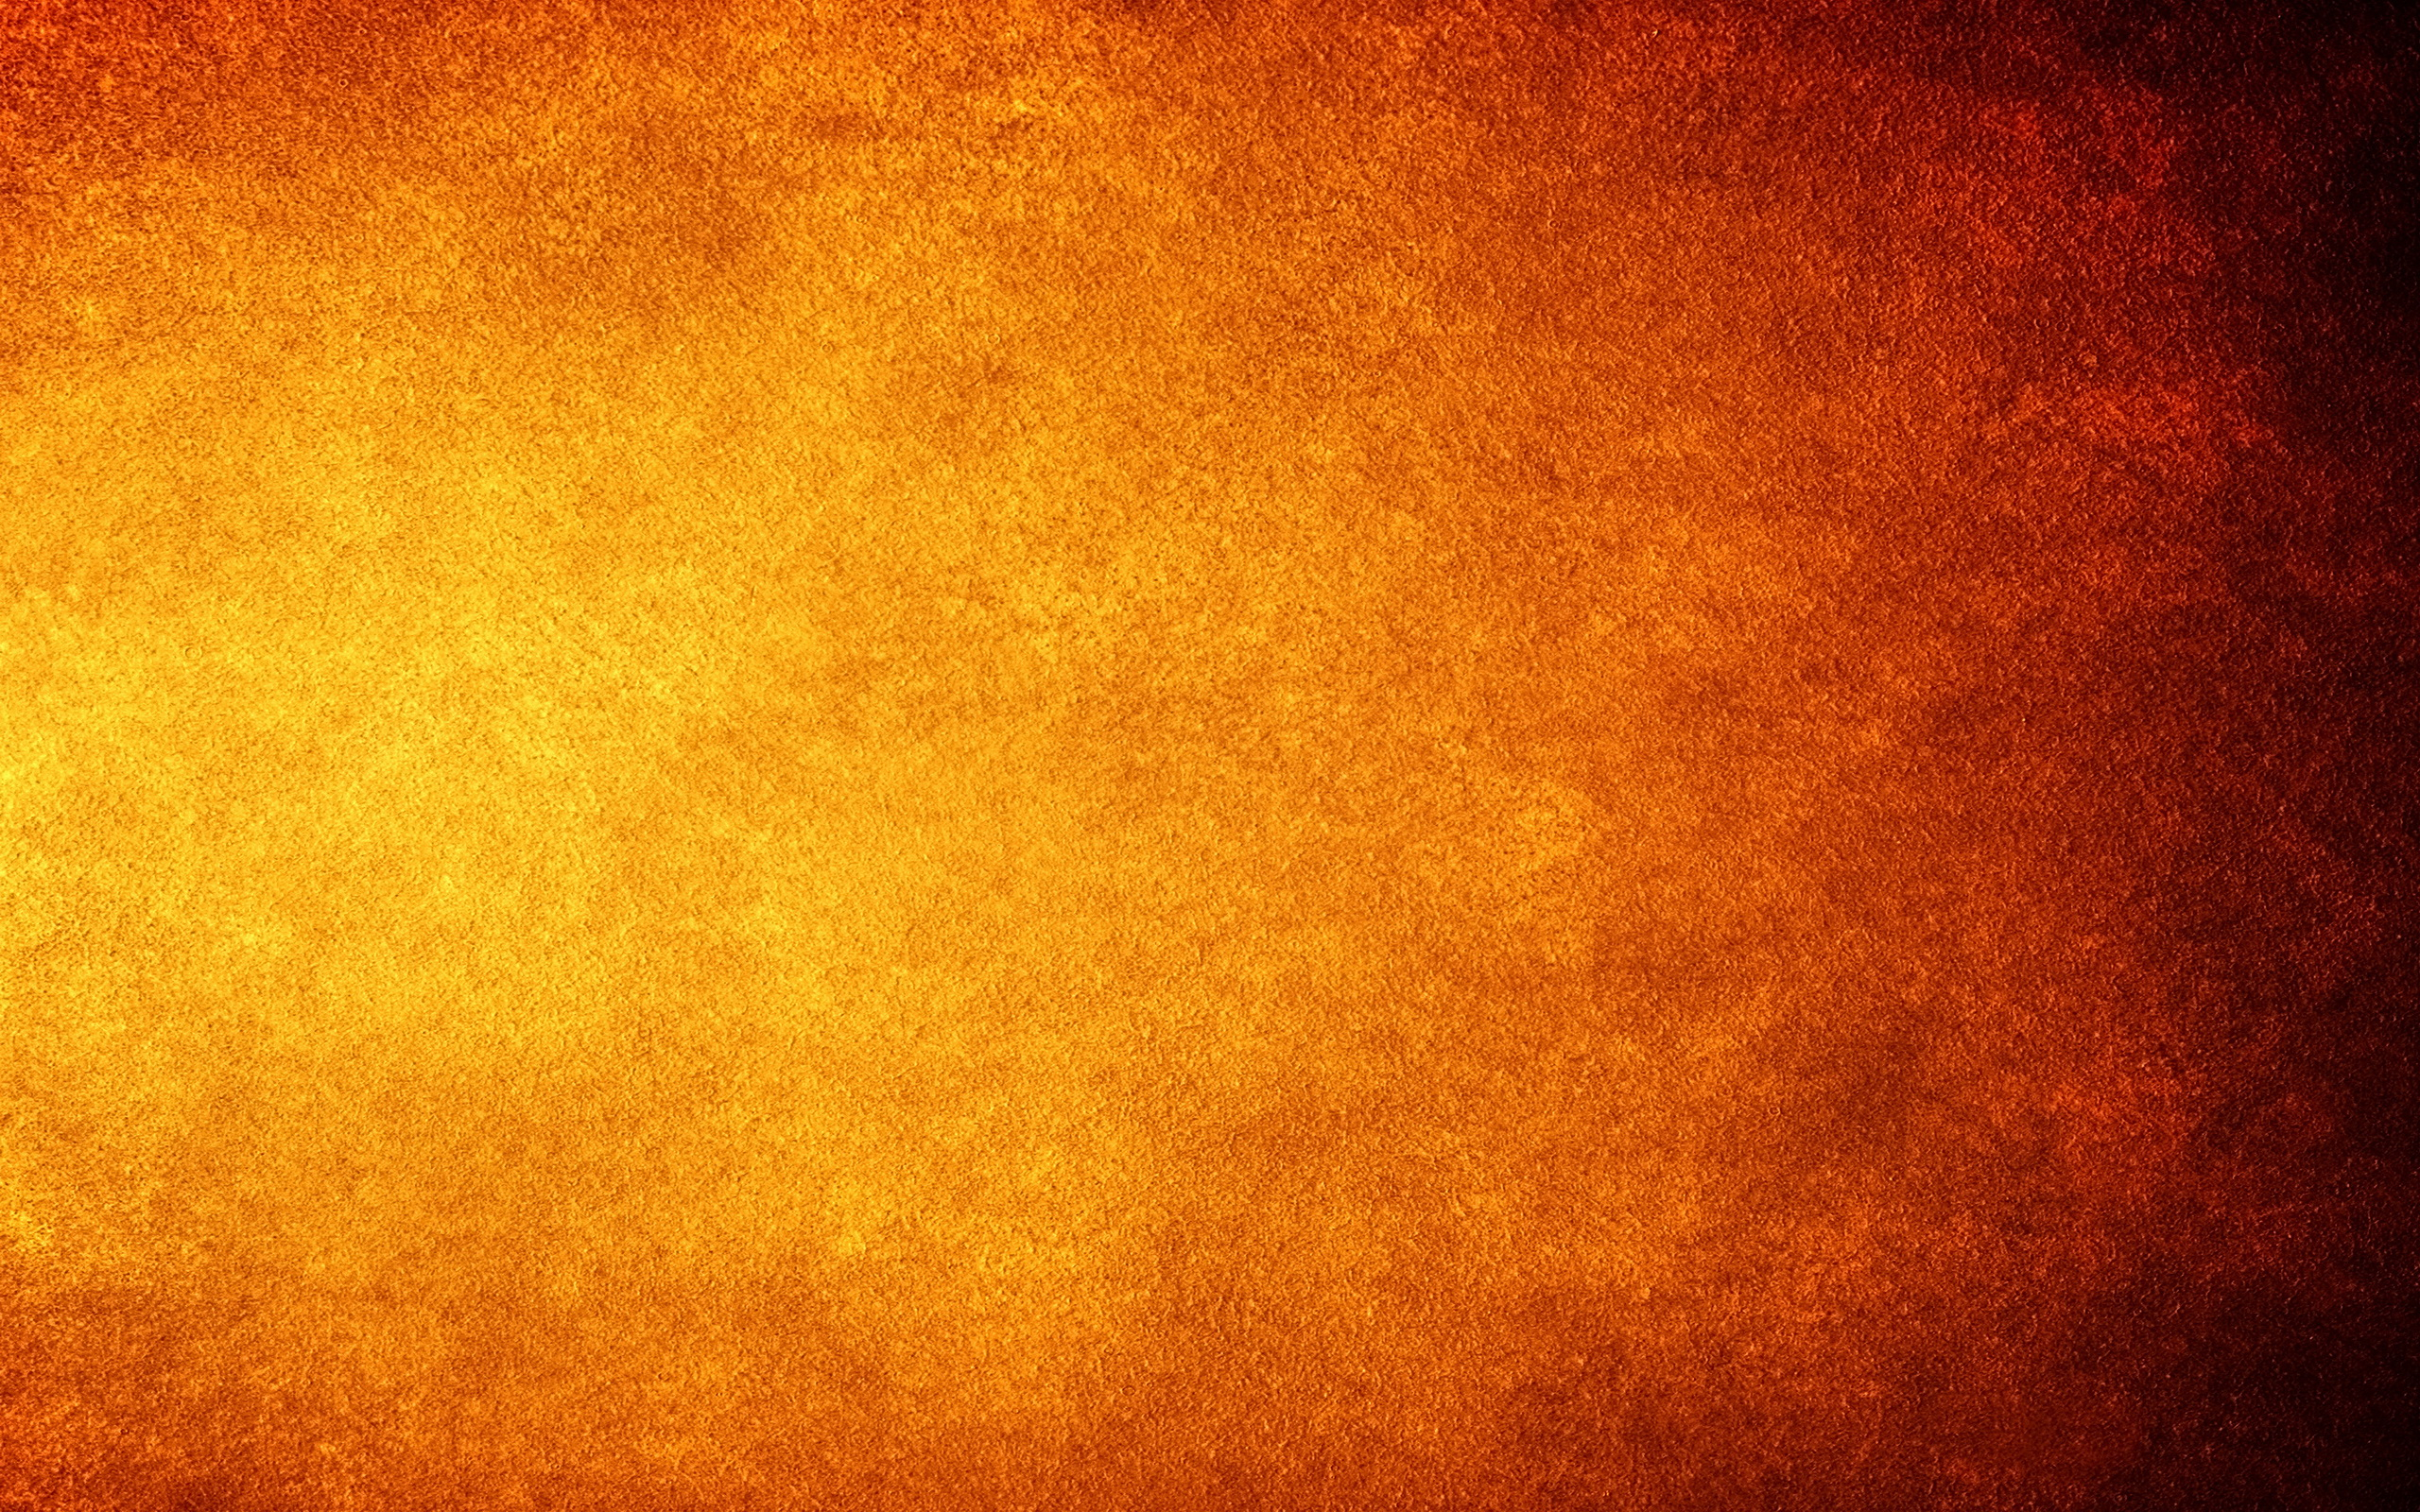 wpid-Orange-Red-Wallpaper.jpg